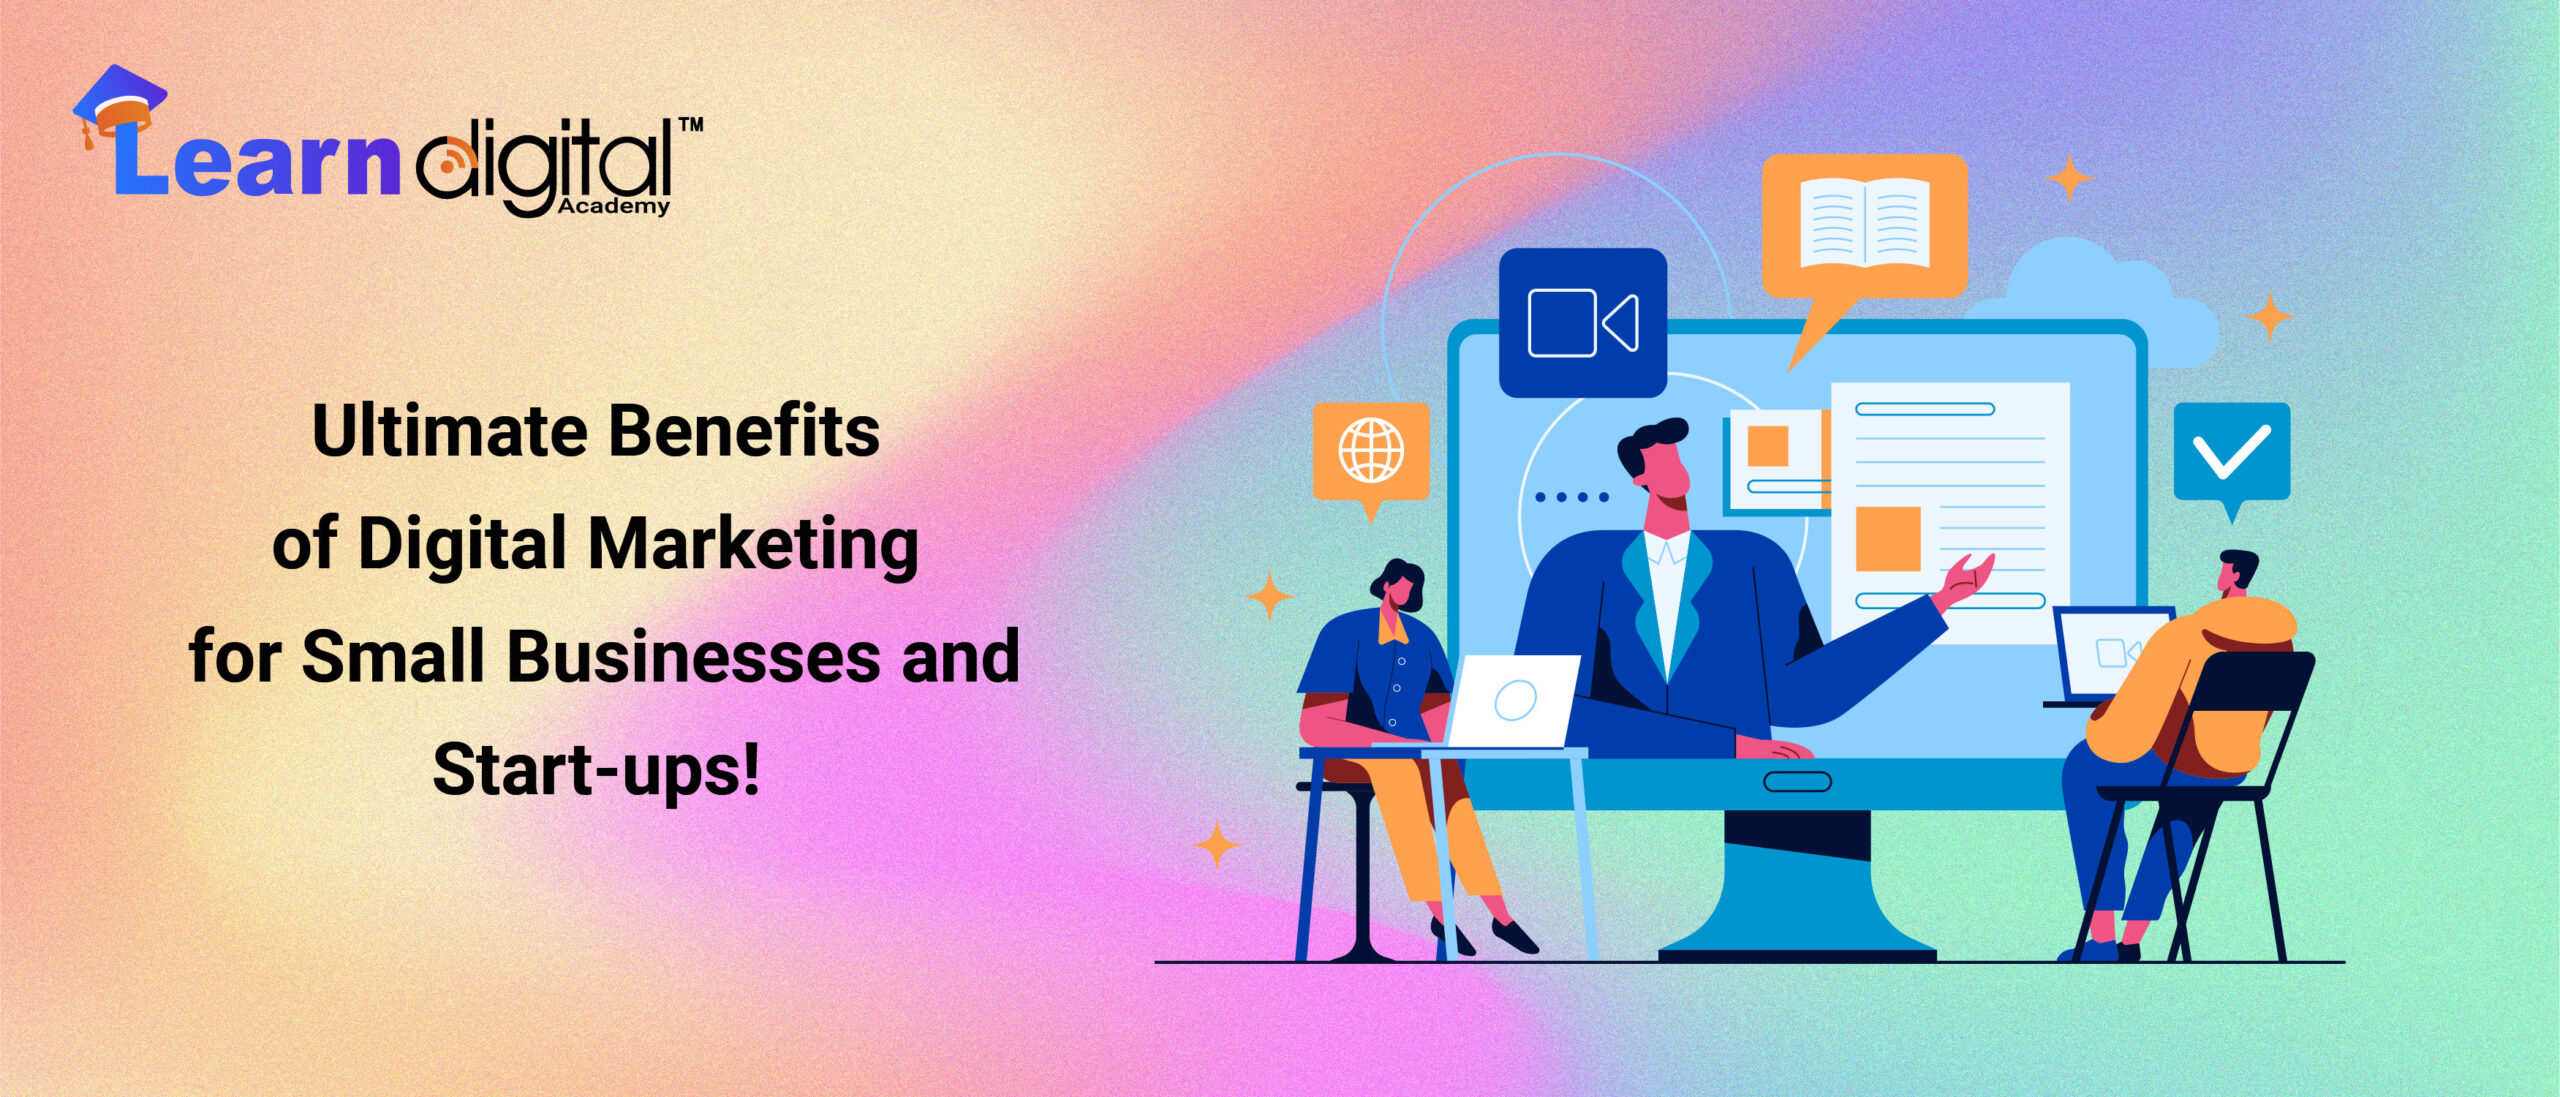 Ultimate-Benefits-of-Digital-Marketing-for-Small-Businesses-and-Start-ups-scaled.jpg